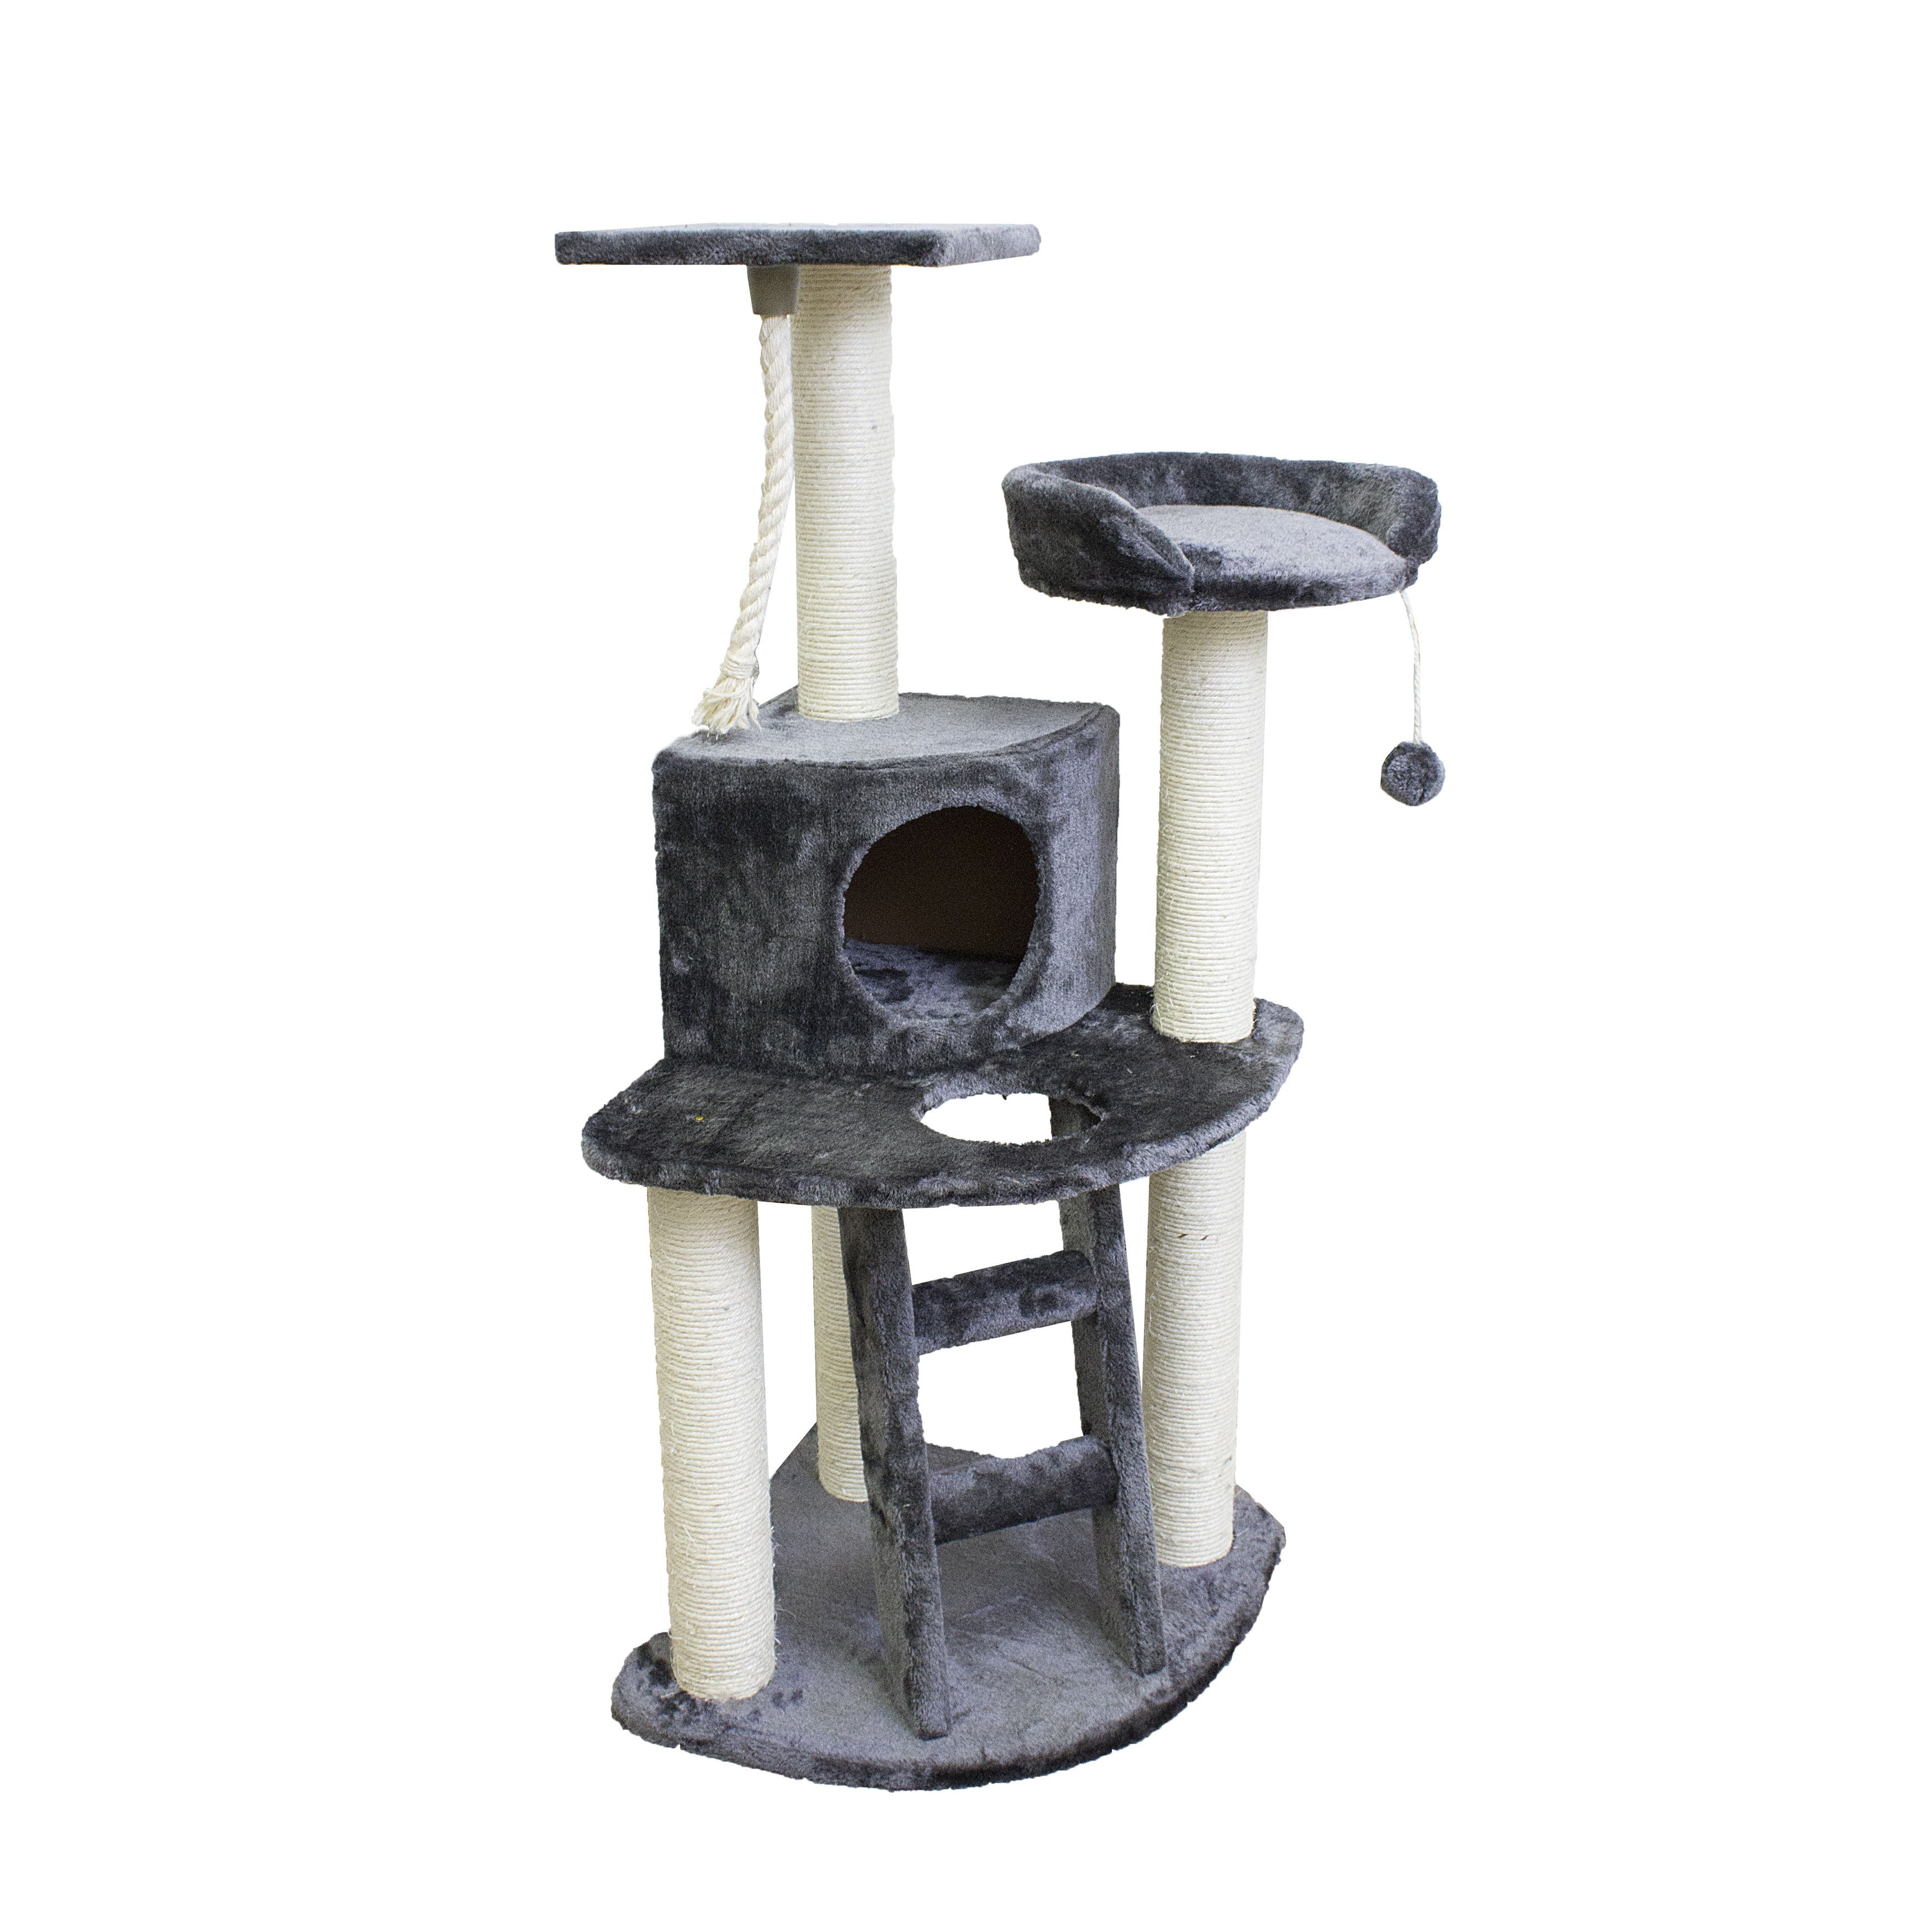 Give your cat the t of entertainment with this cat tree offering